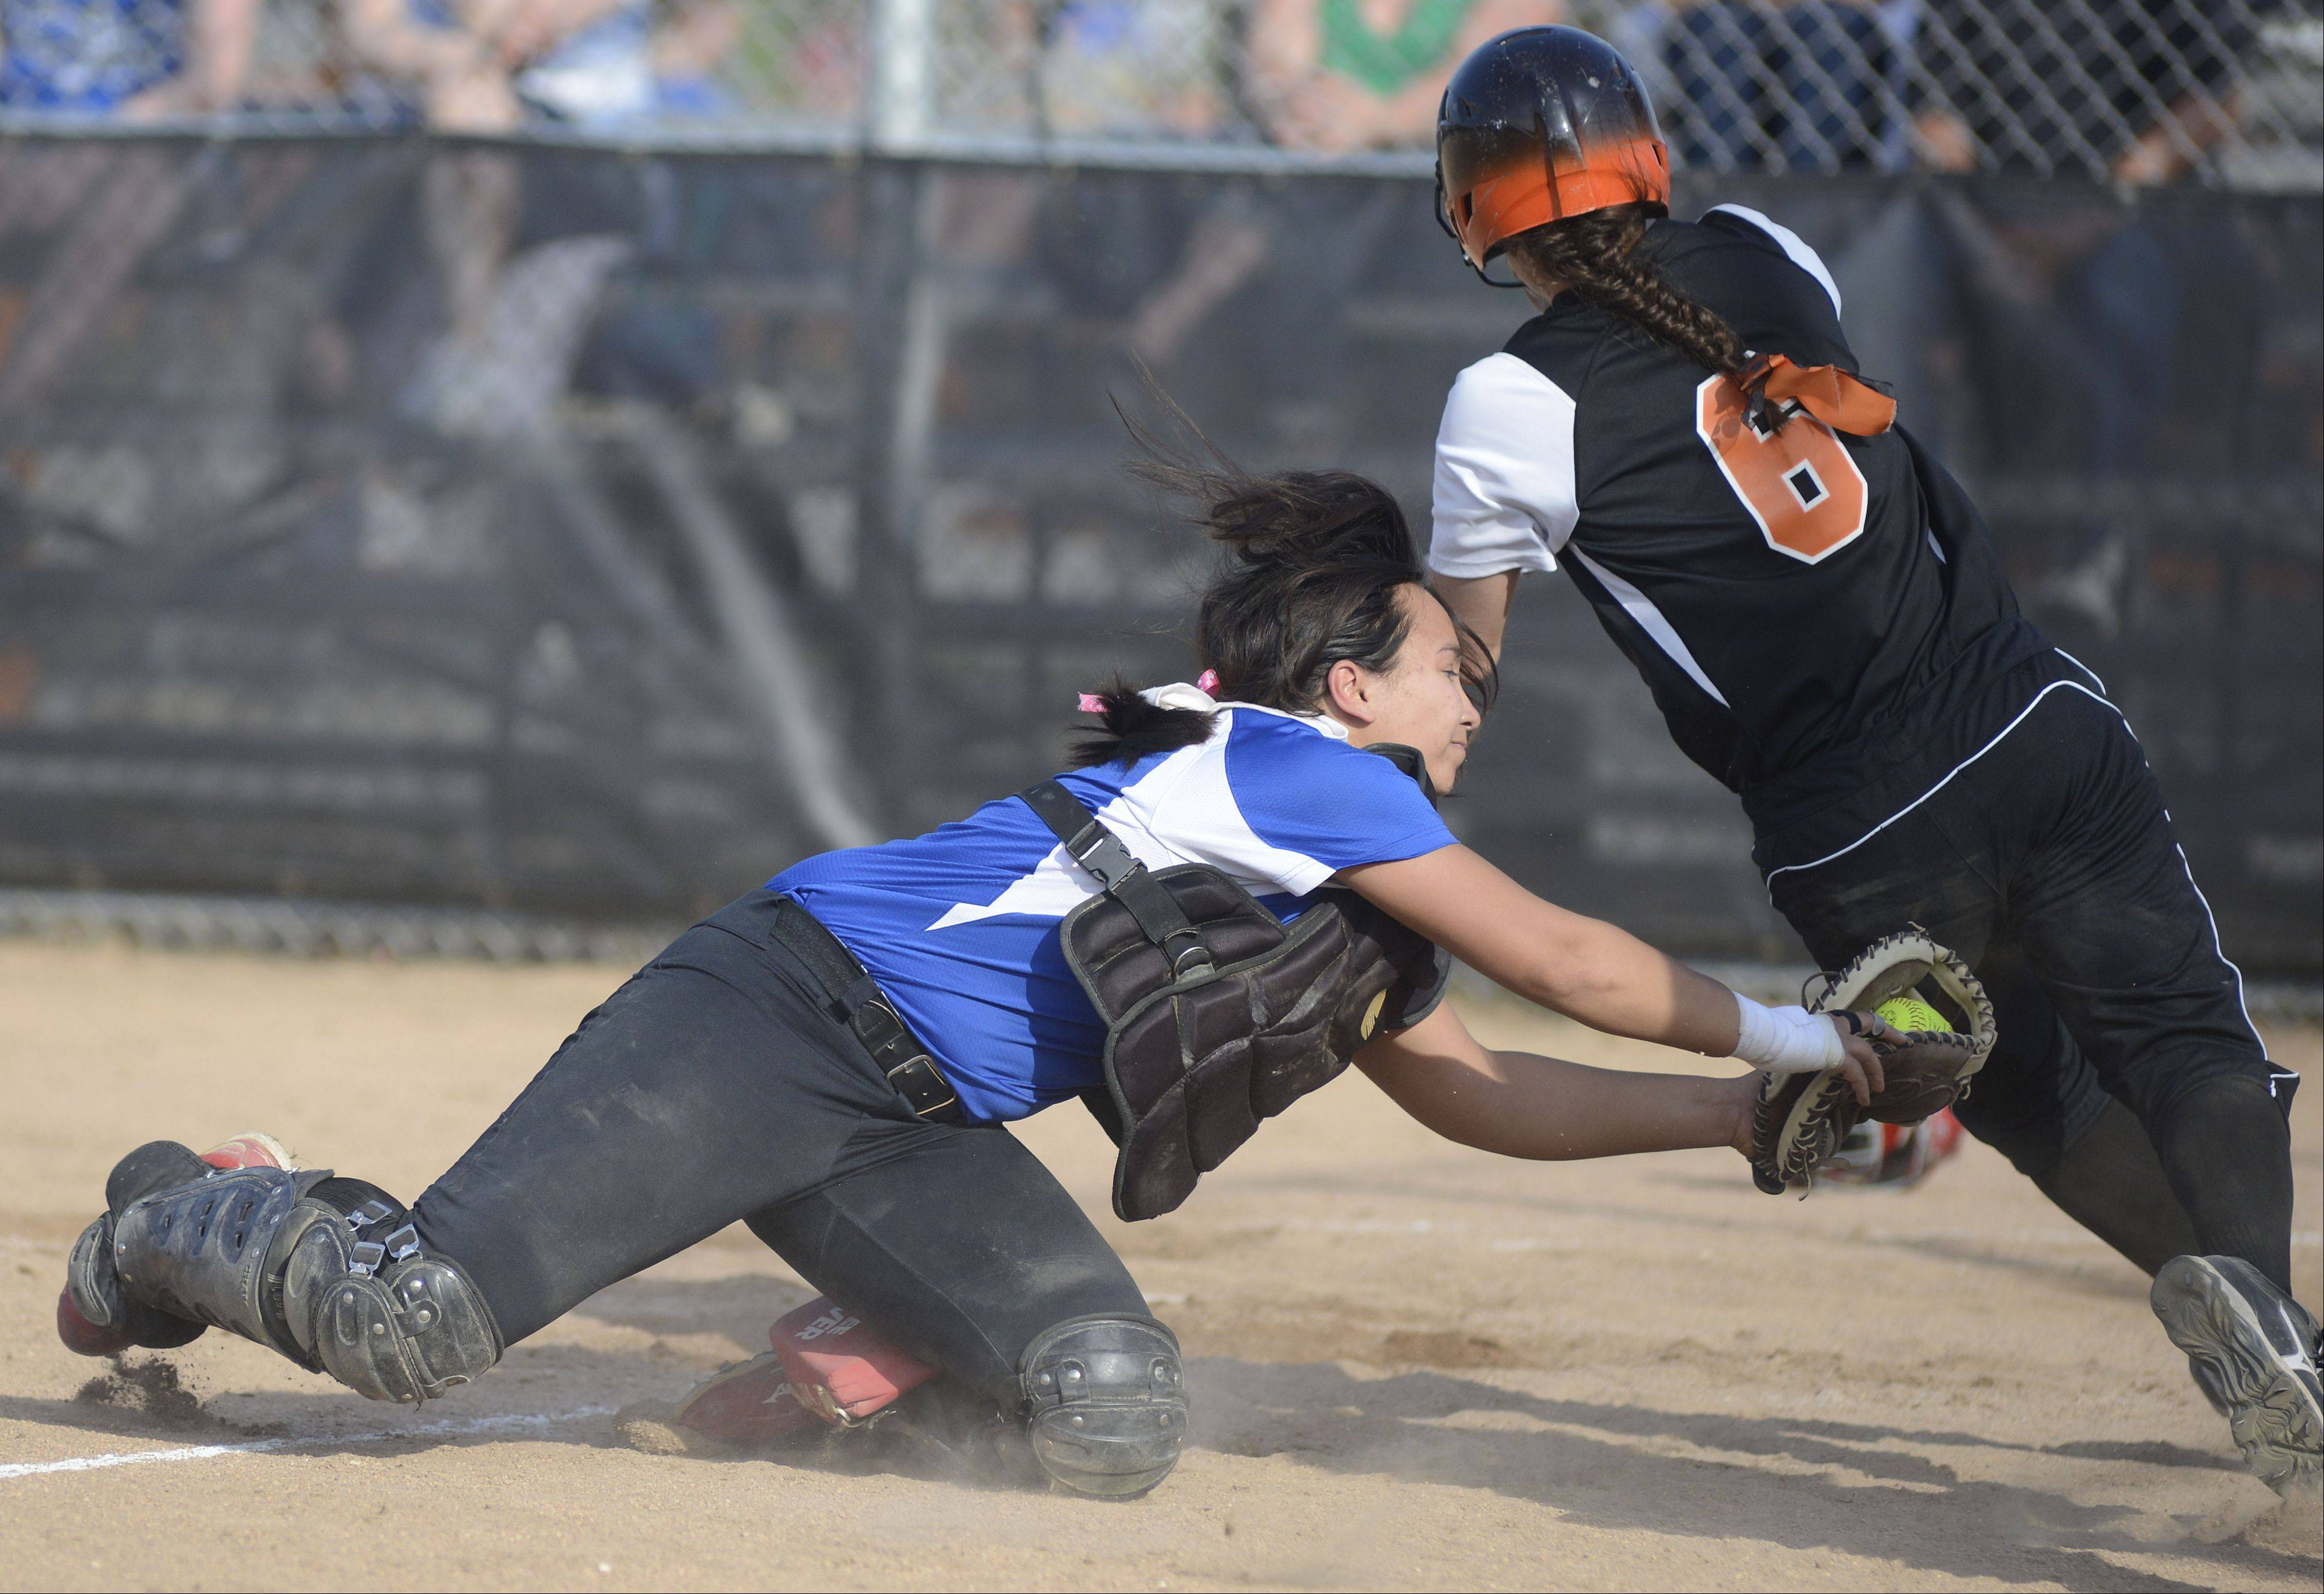 St. Charles East's Olivia Cheatham is tagged out at home plate by Geneva catcher Kelly Gordon in the fourth inning on Tuesday, April 30.